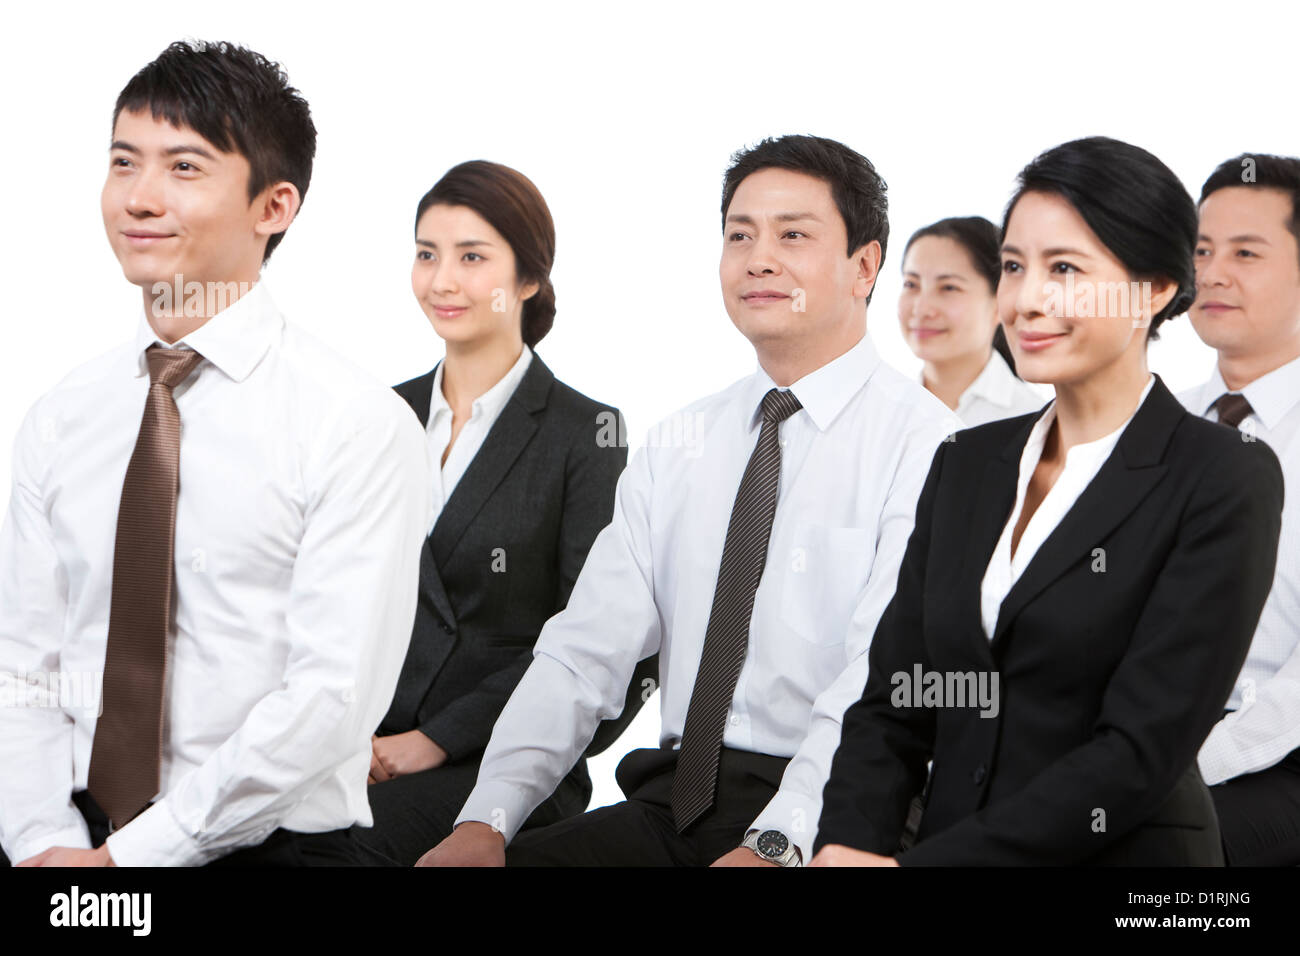 Cheerful business persons sitting together in a meeting - Stock Image